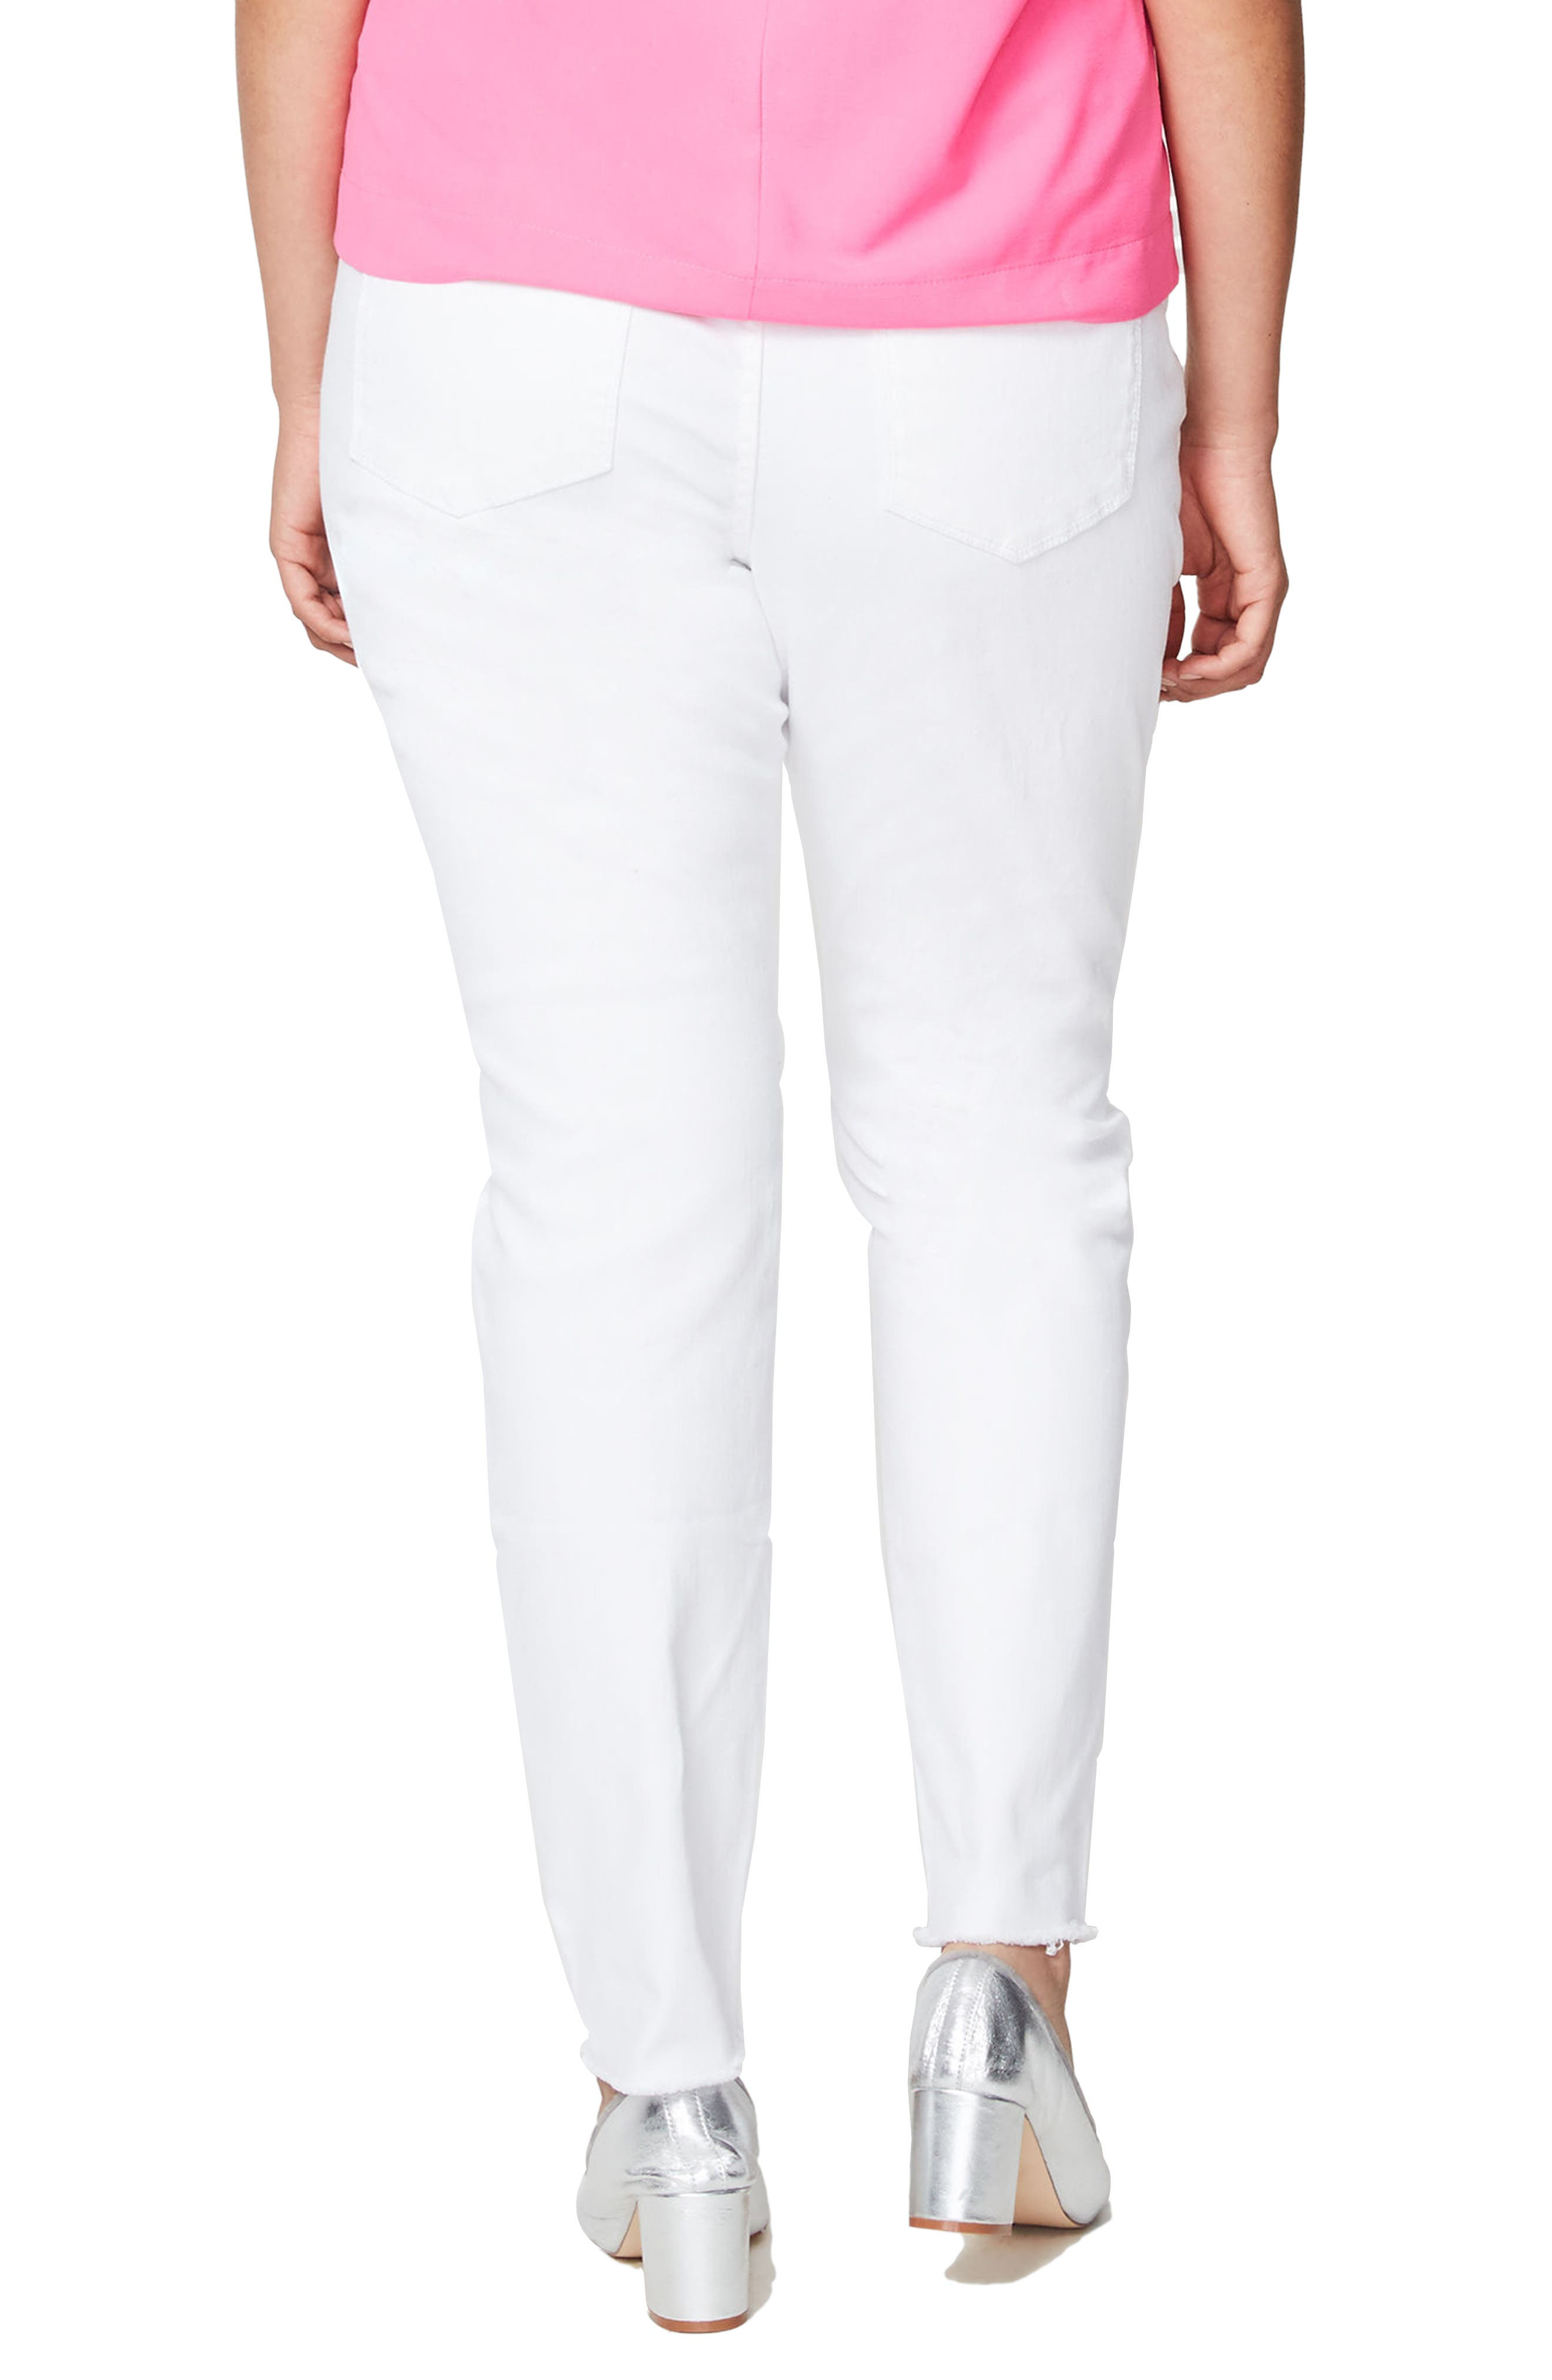 Rachel Roy Live to Love Ripped Skinny Jeans,                             Alternate thumbnail 2, color,                             100